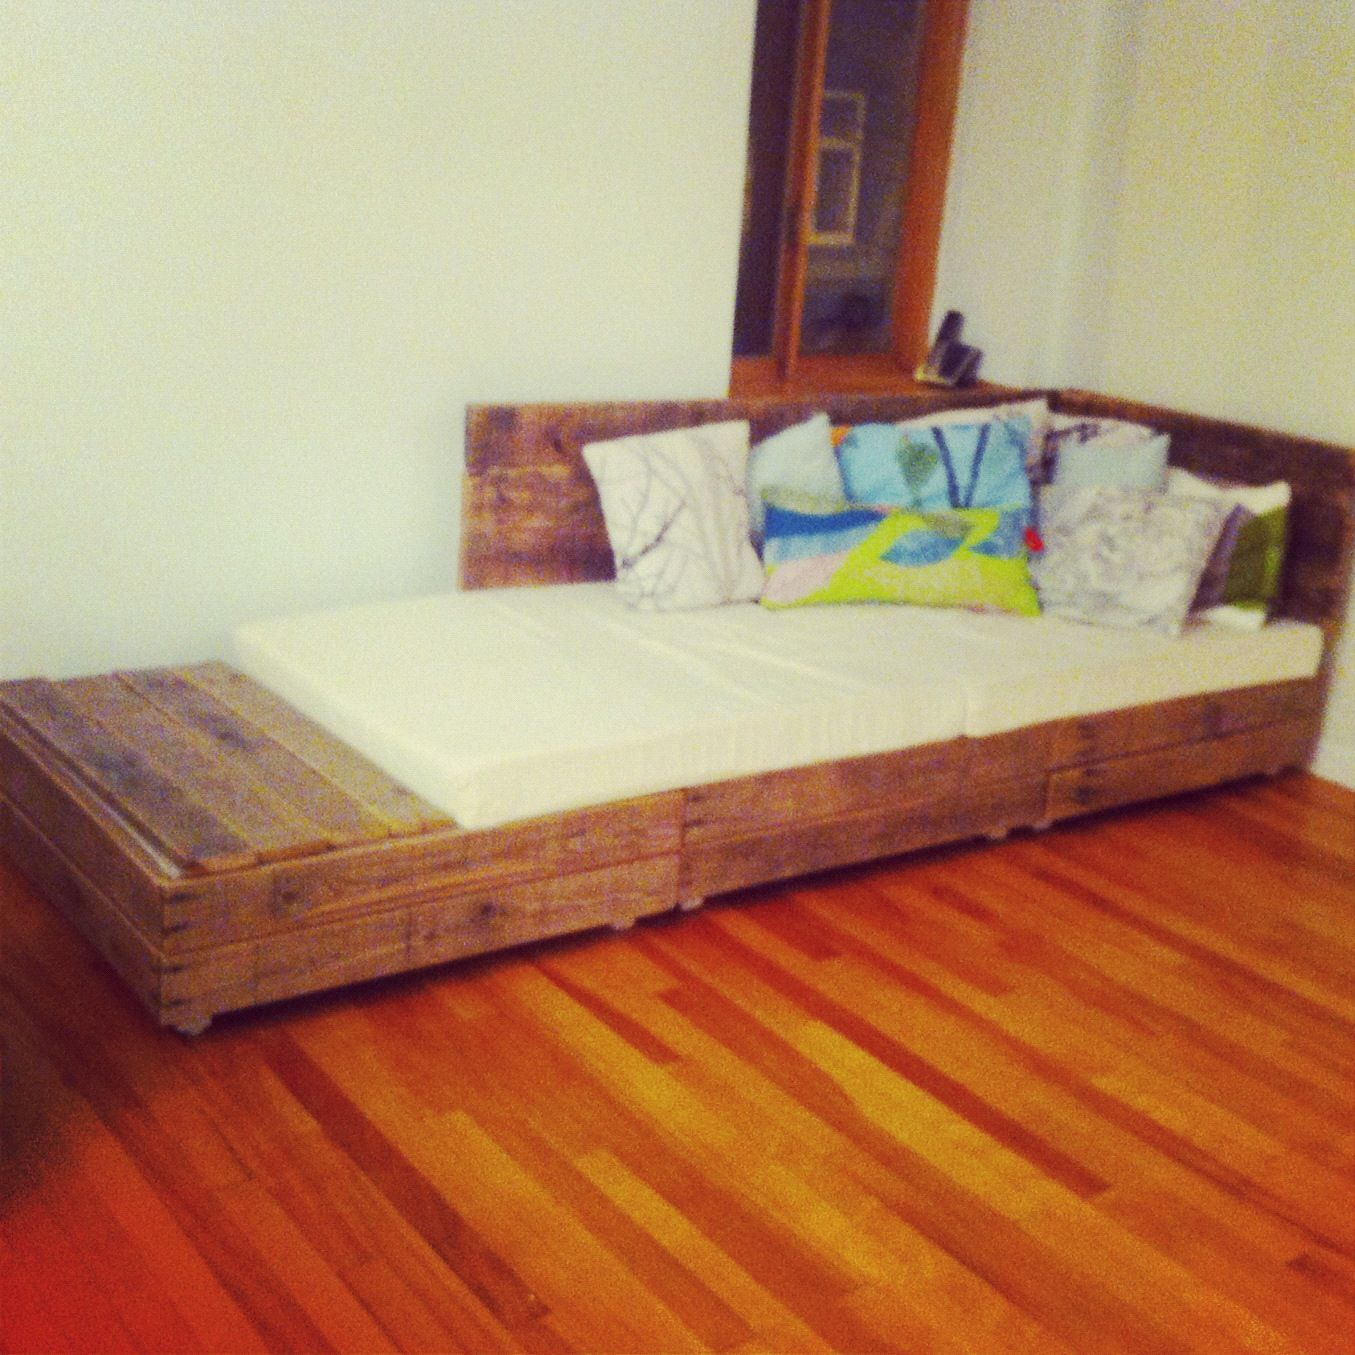 Diy Pallet Couch Sofa Bed Upcycled Salvaged Wood. Perfect For Elsa